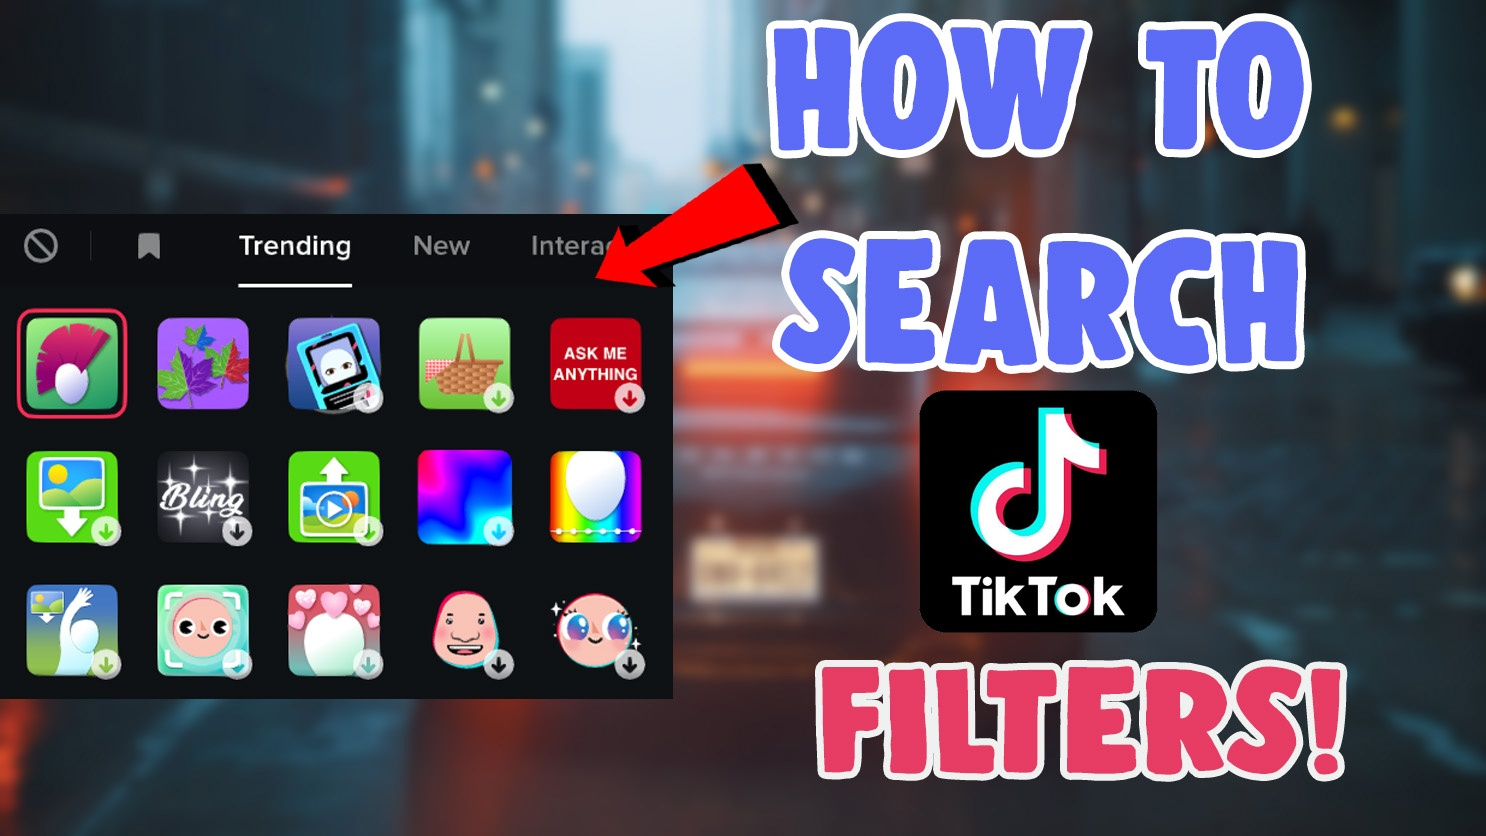 how to search for filter effects tiktok